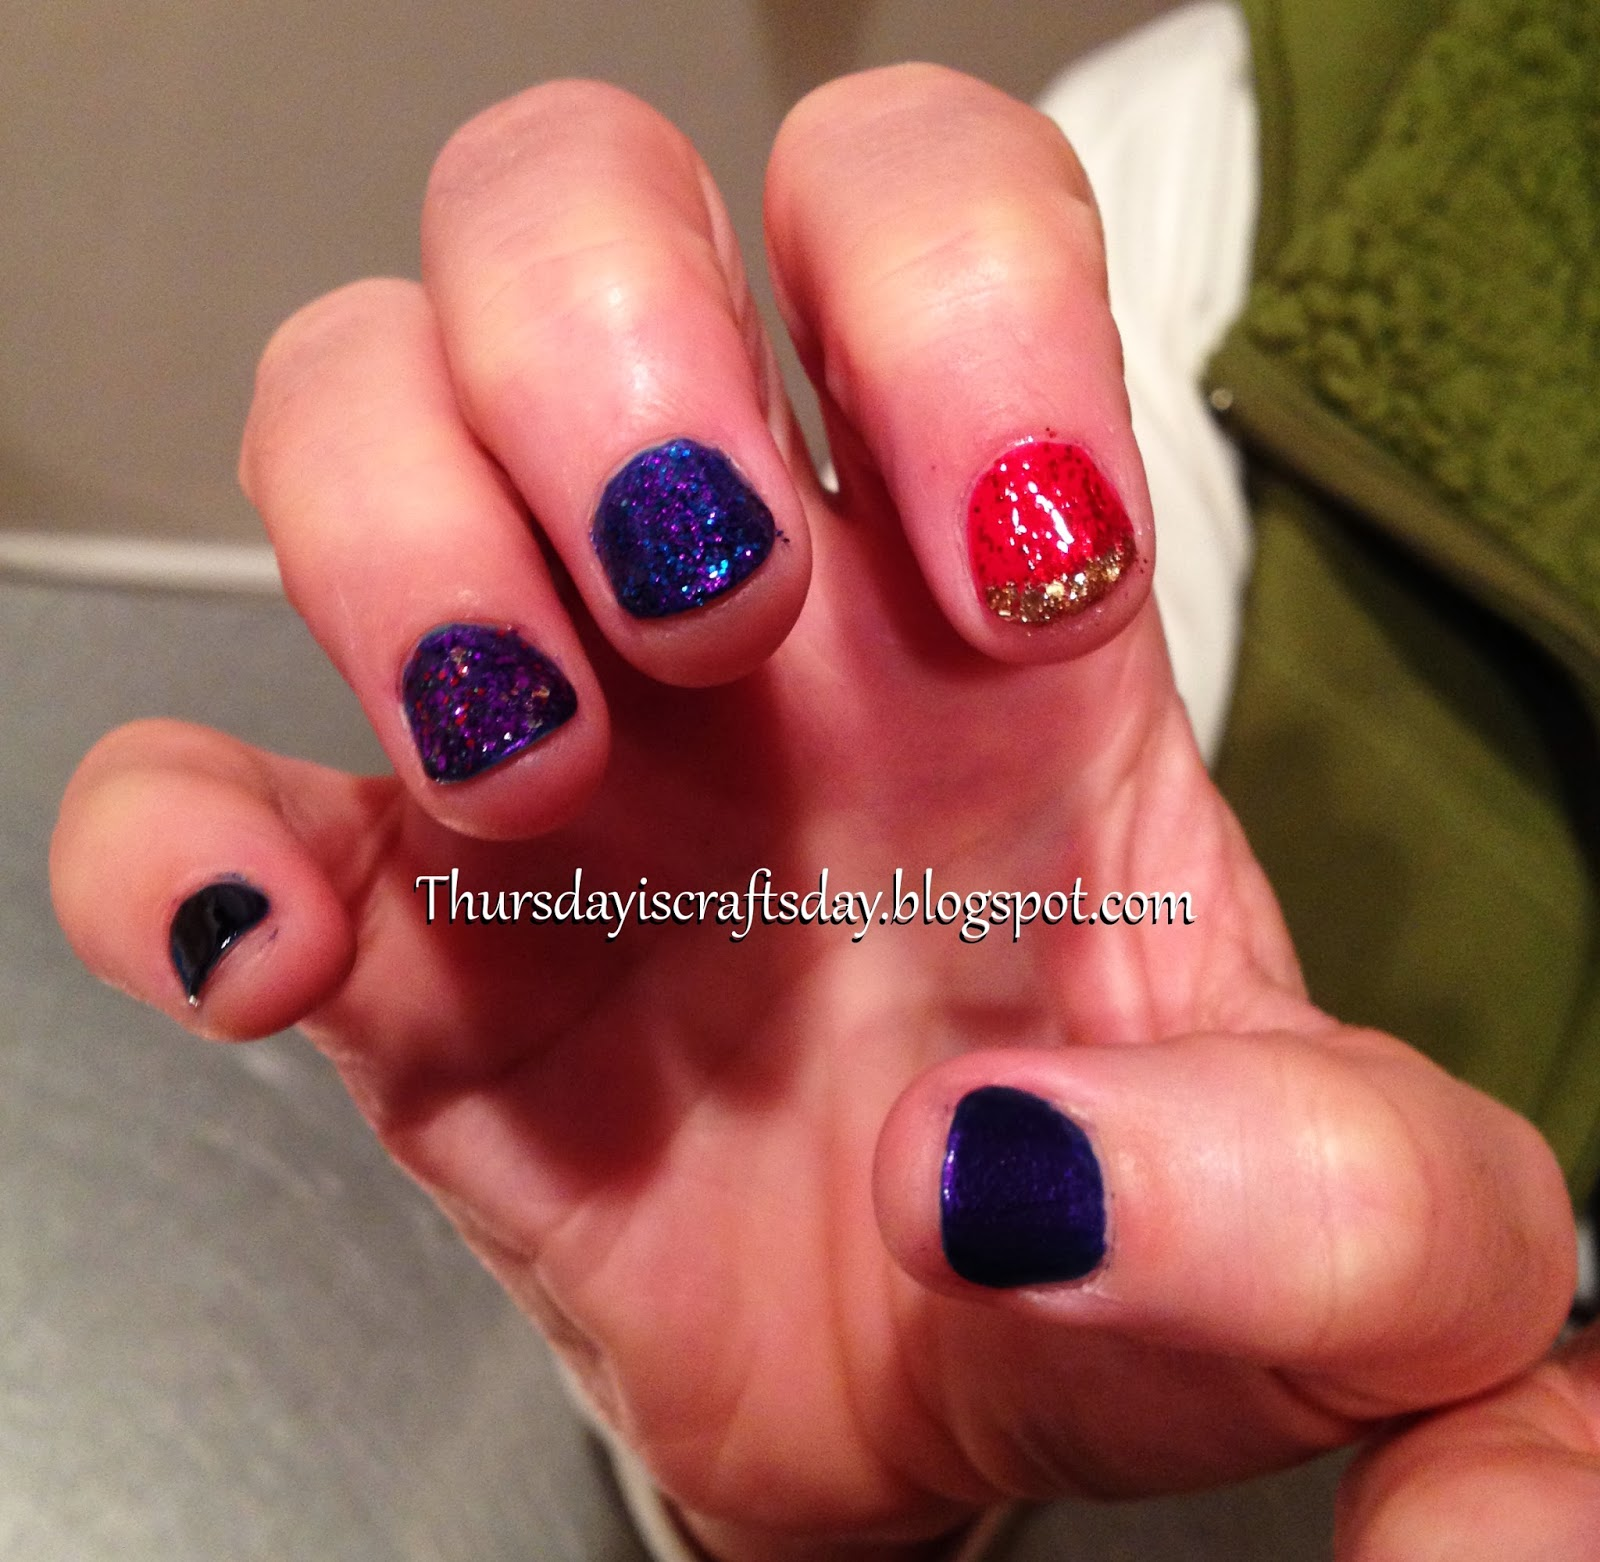 Thursday is Craftsday: Crochet! Or... Not... - Backup Nail Art Project